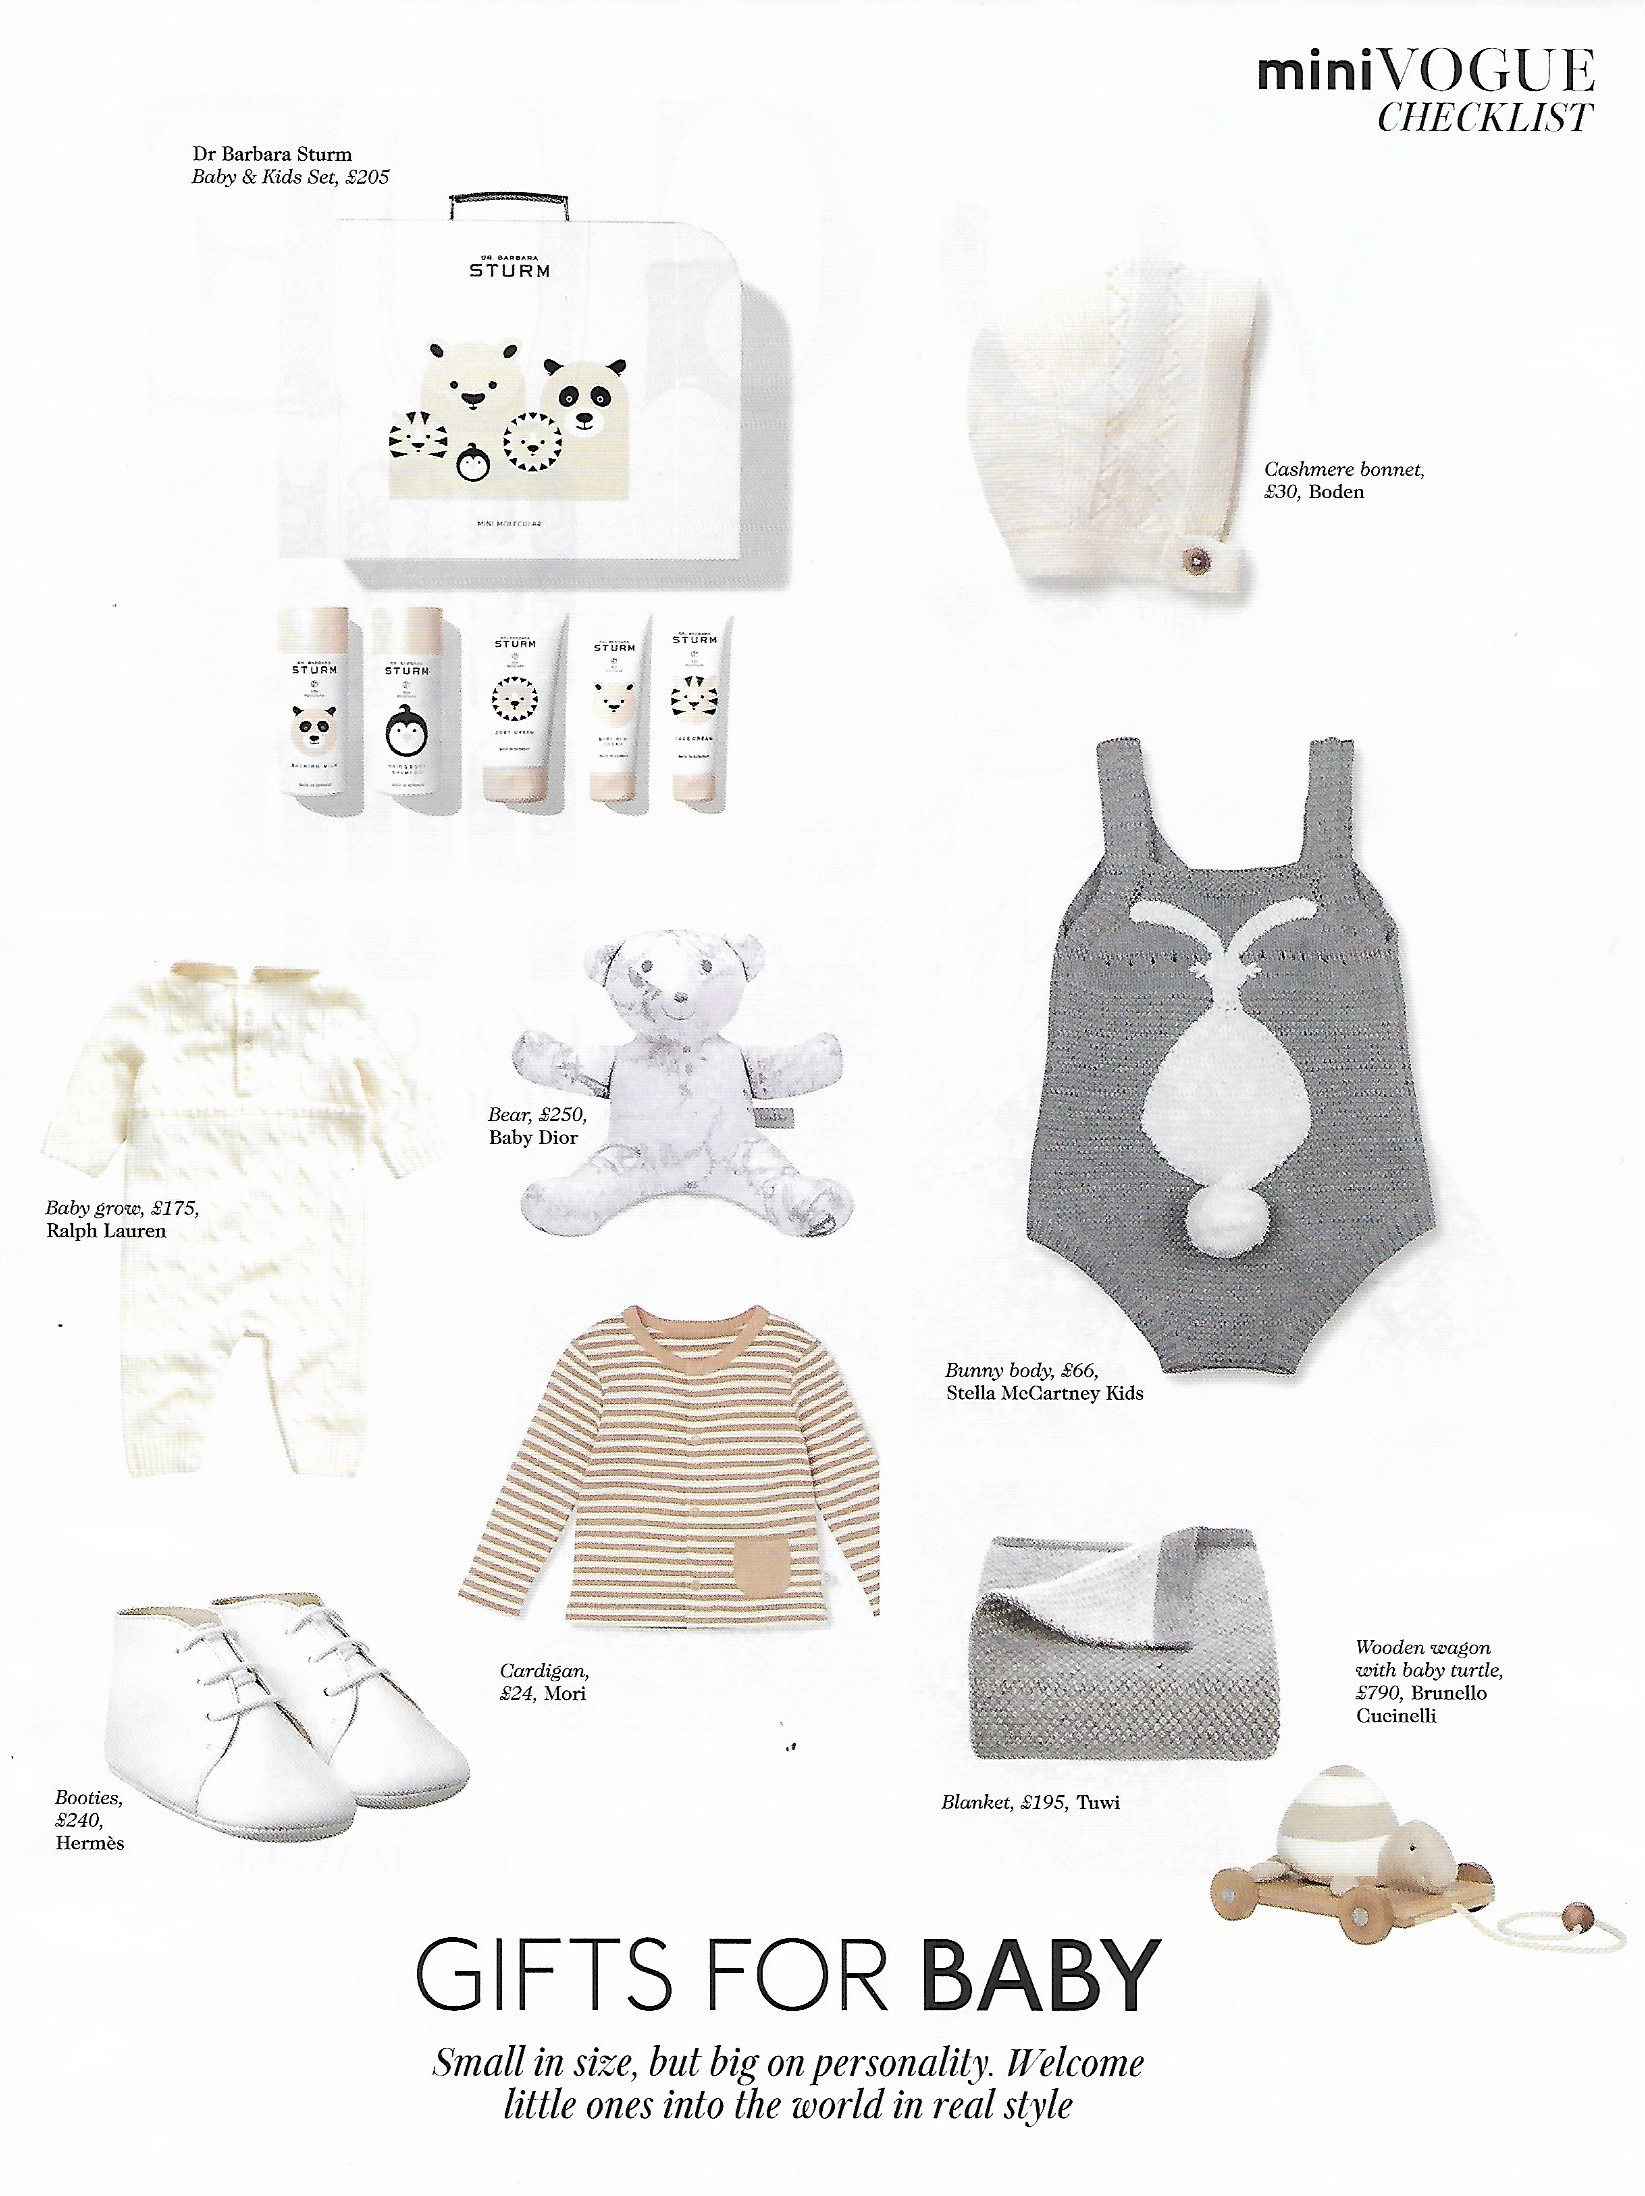 Vogue july 2020 gifts for baby checklist featuring Tuwi